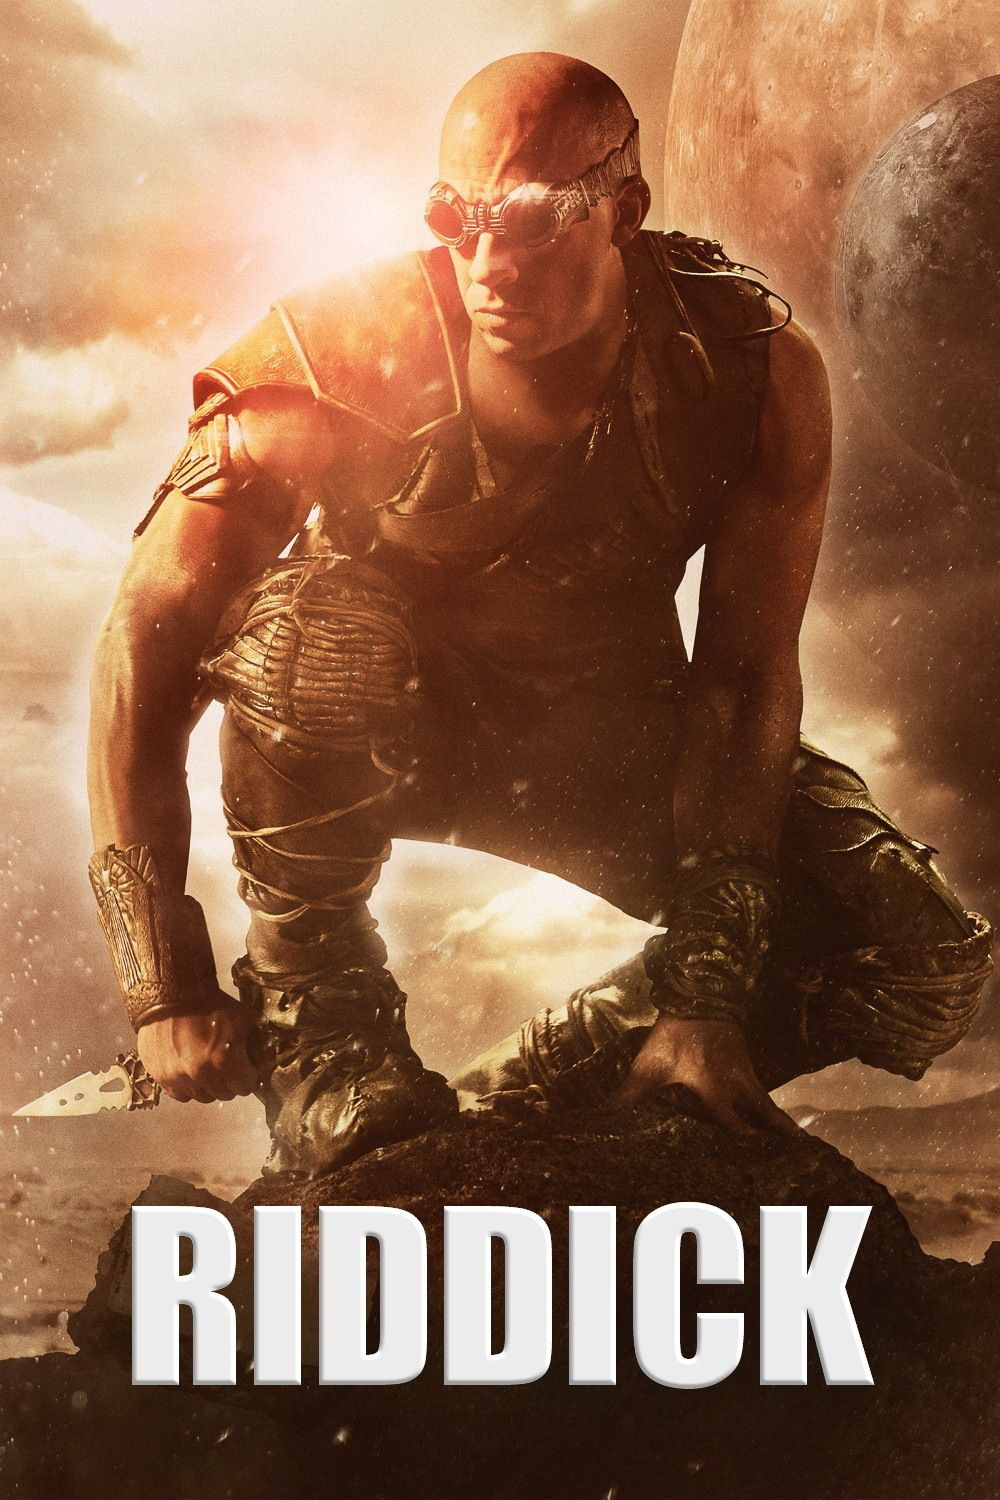 Riddick Full Movies Full Movies Online Free Free Movies Online